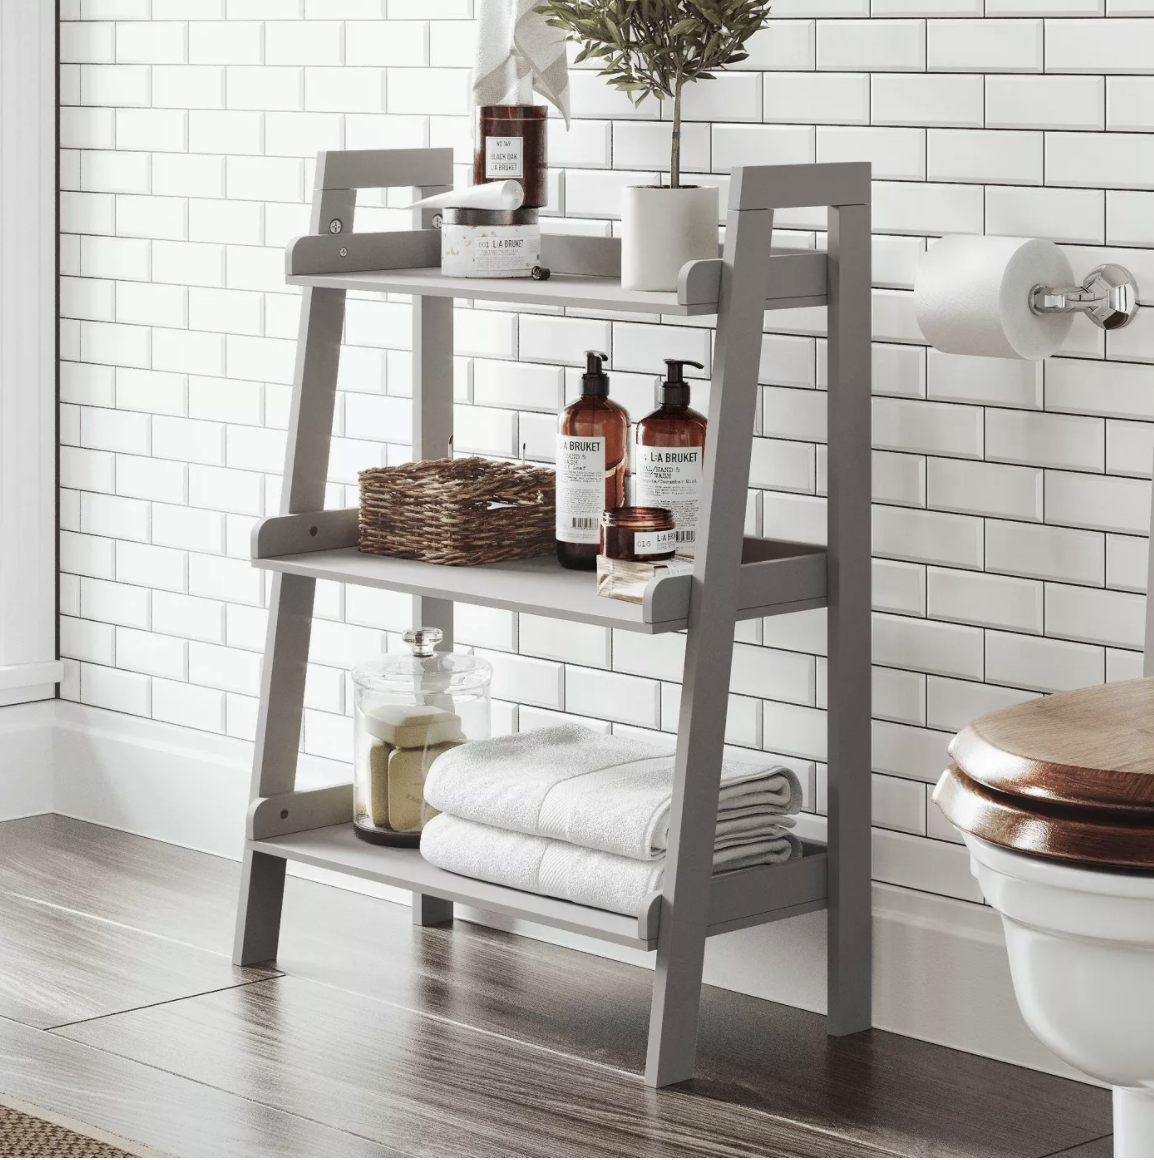 the grey three-tier storage unit holding towels and toiletries